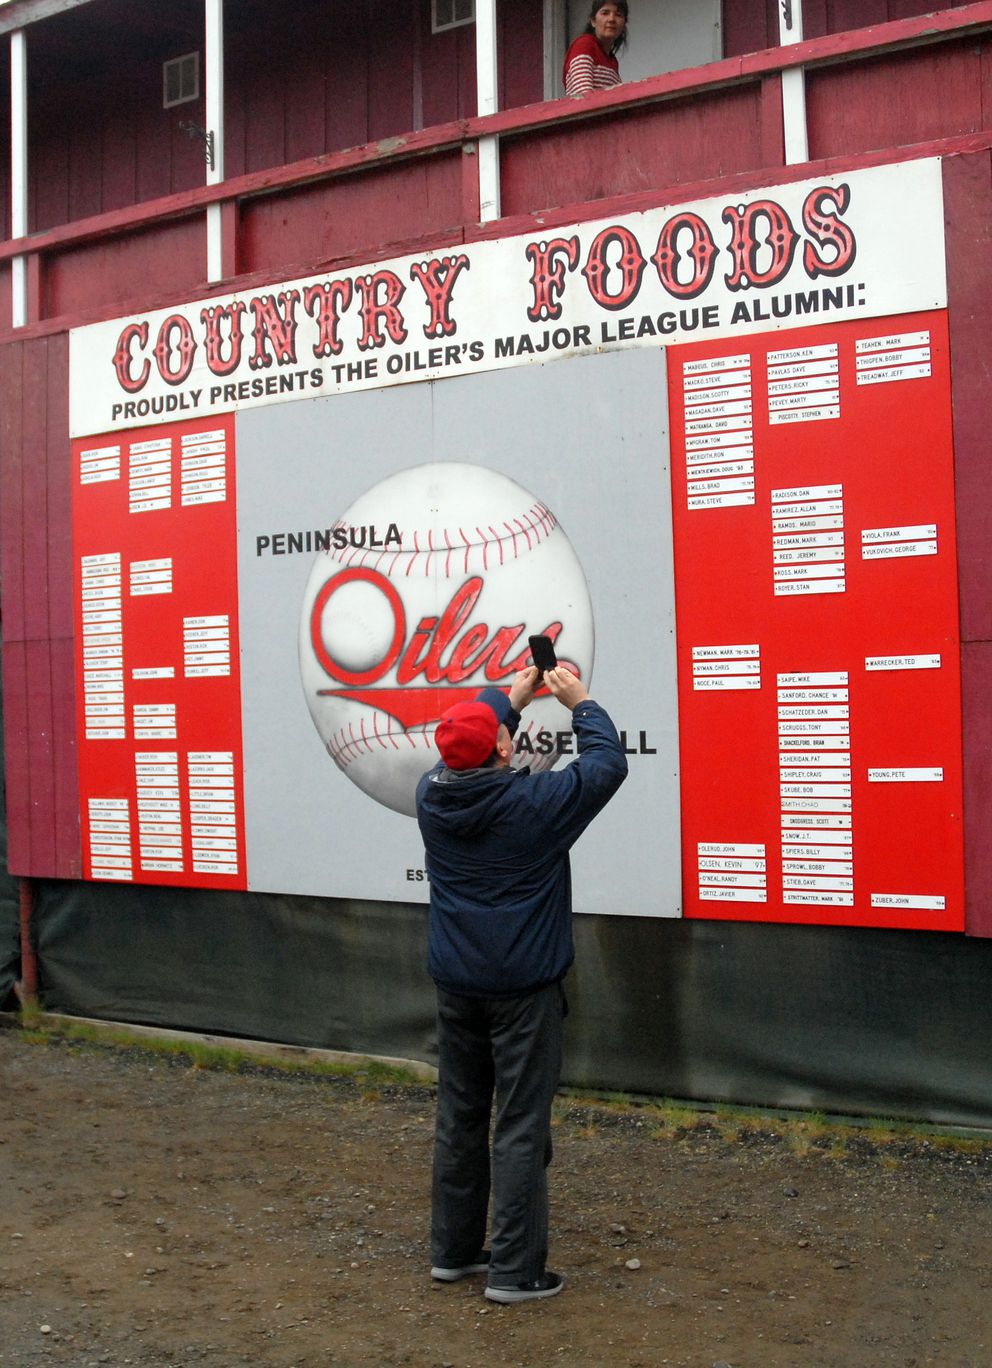 Chinooks booster club president Tim Barto photographs a list of Peninsula Oilers who went on to play Major League Baseball. (Matt Tunseth / Chugiak-Eagle River Star)